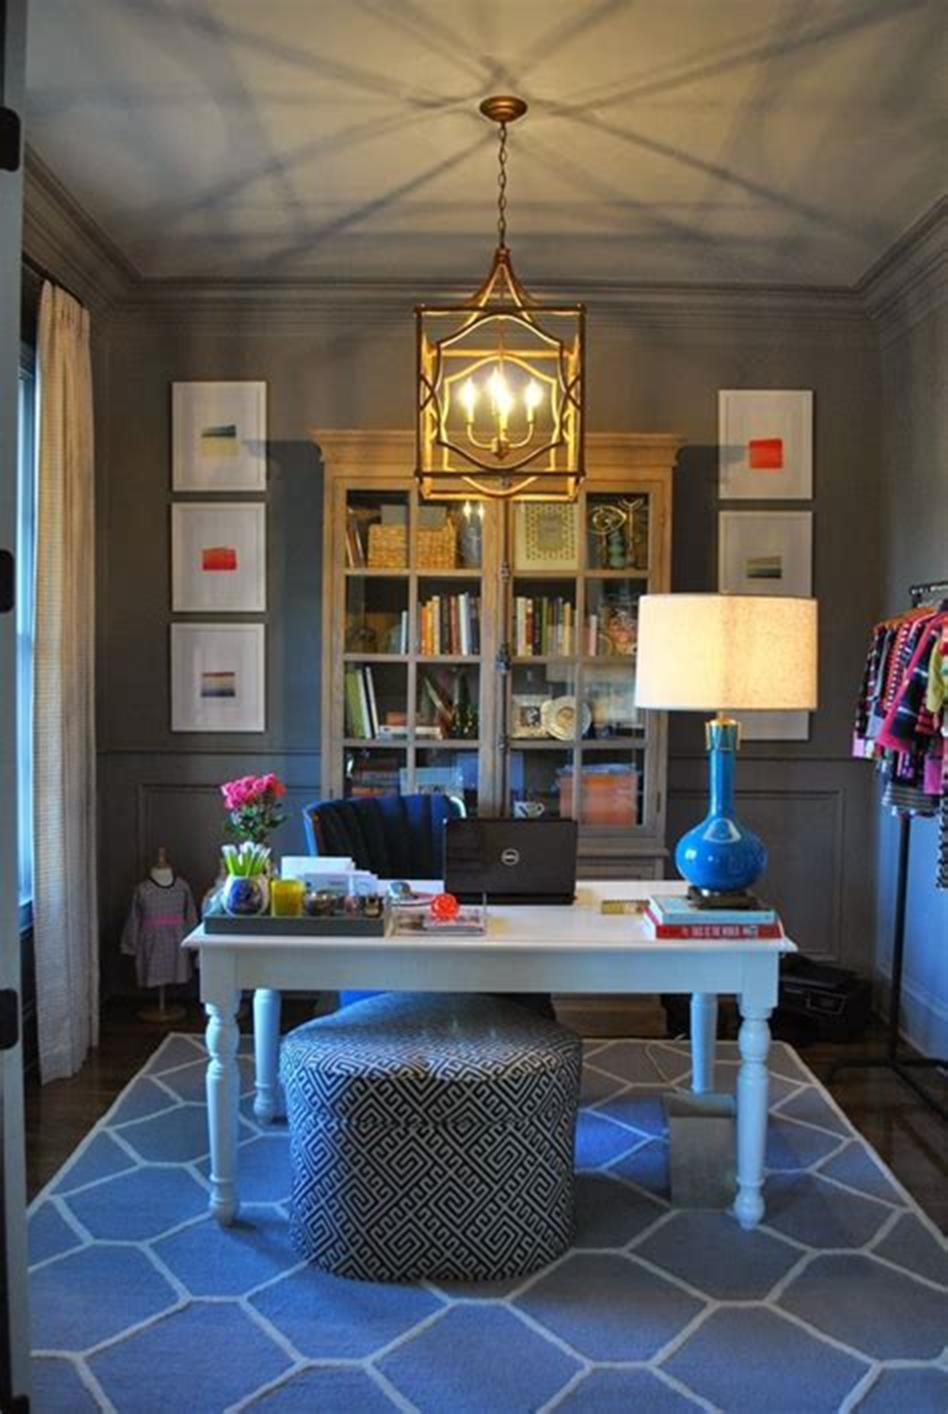 50 Best Small Space Office Decorating Ideas On a Budget 2019 61